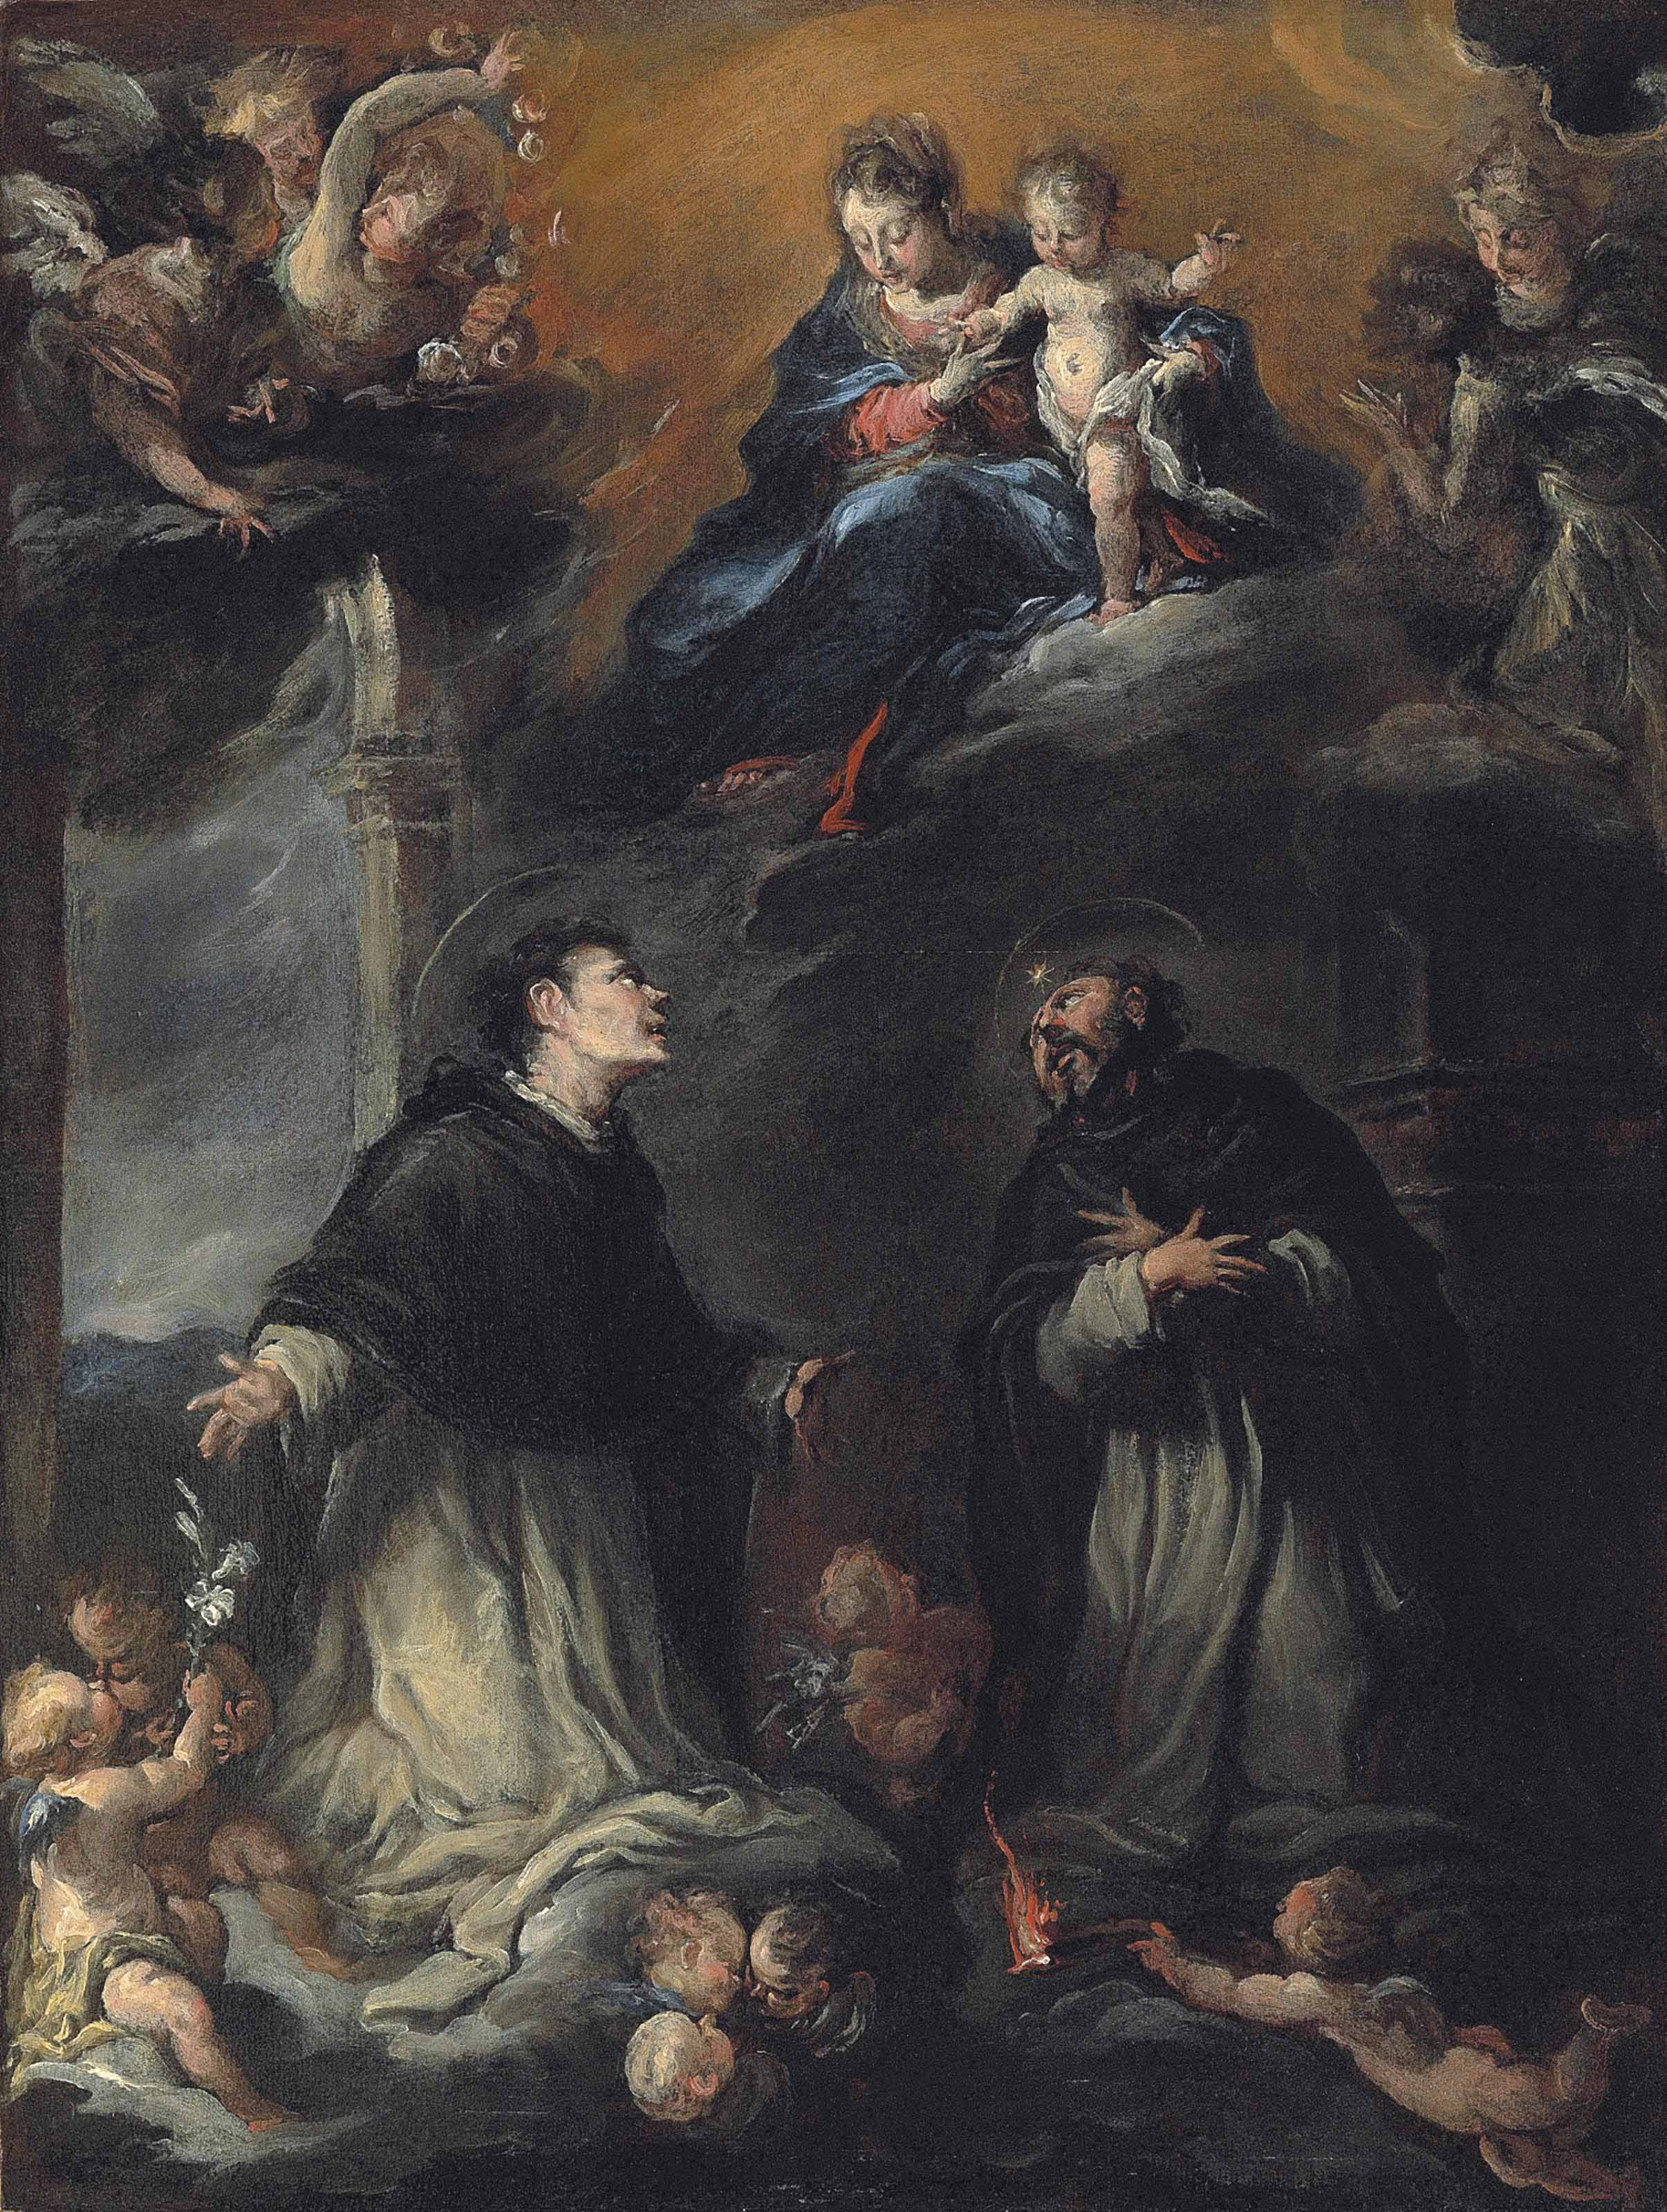 The Madonna and Child appearing to Saints Nicholas of Tolentino and Thomas Aquinas